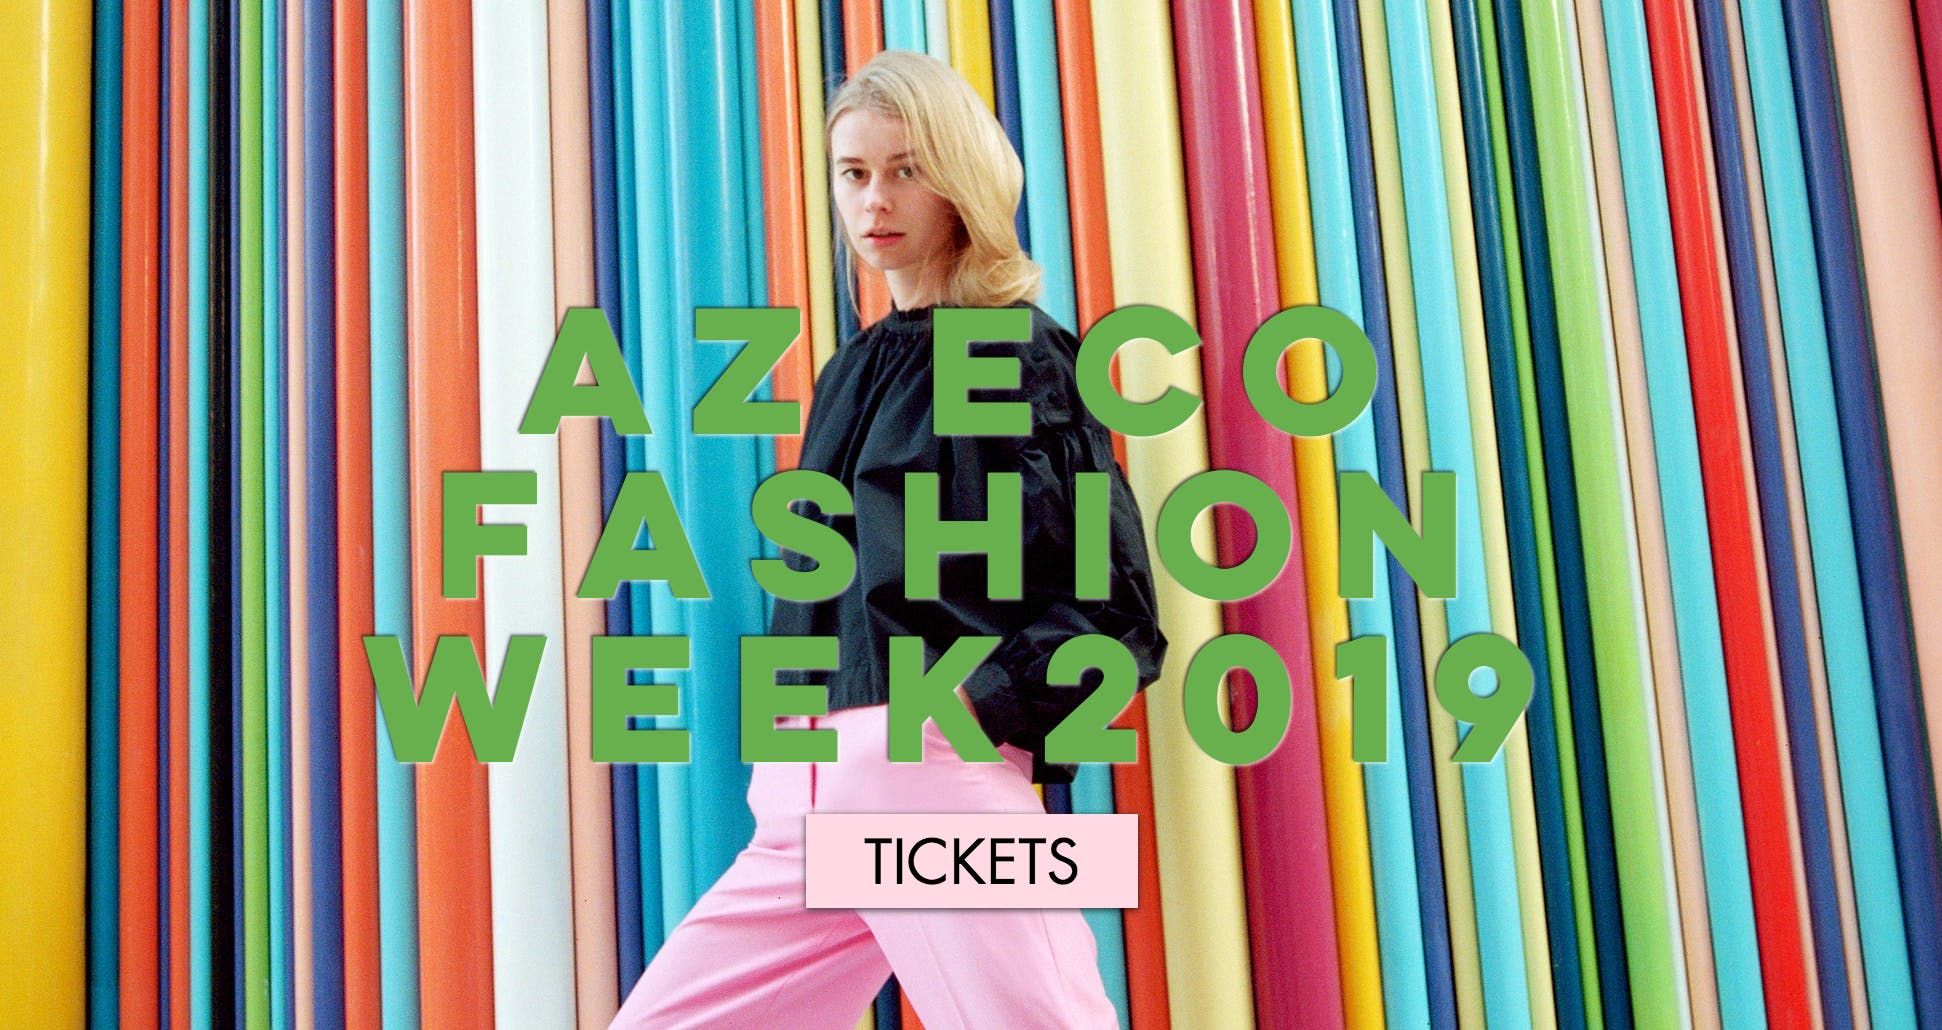 Arizona Eco Fashion Week Social Hour Early Bird Pricing - FROW VIP